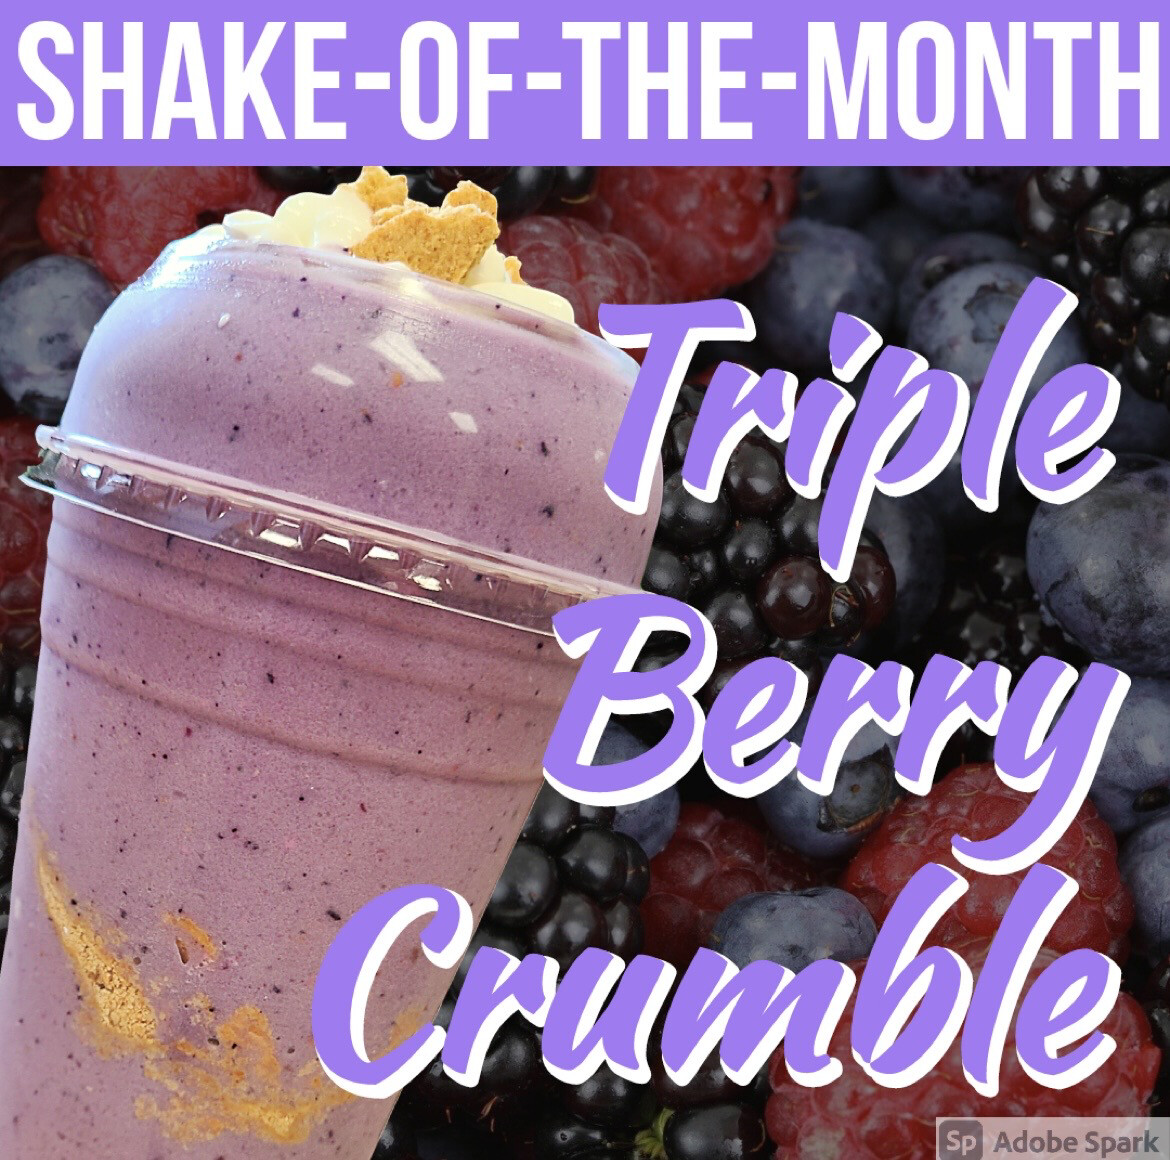 Shake of the Month